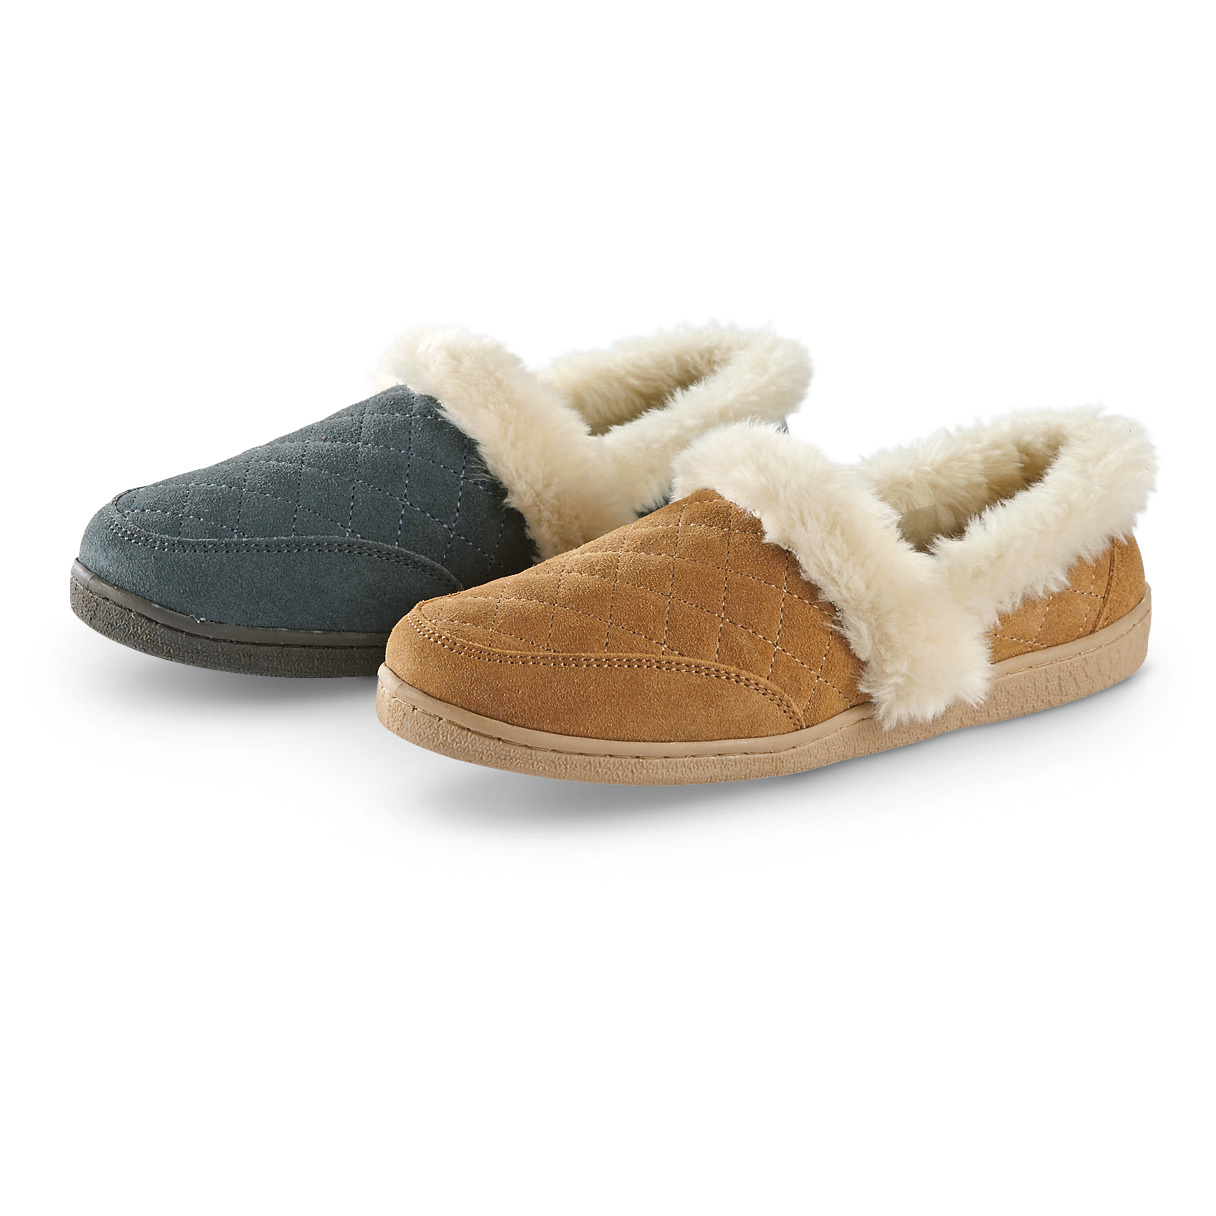 "Women's Clarks Quilted Slippers are here FOR LESS! It's time to retire your old slippers, because these are ridiculously comfortable. They're so cozy, you won't want to wear anything else on your feet! The soft lining feels just like real fur for a luxurious look and feel. Plenty of spring-in-your-step cushioning, too. Treat yourself to BIG SAVINGS when you shop The Guide! Suede leather uppers with quilted stitching Plush fur-like lining Durable indoor / outdoor outsole Cushioned foam insole Each approx. 3""h., 5 ozs. State Color and Size, as available in the Shopping Cart. - $19.99"